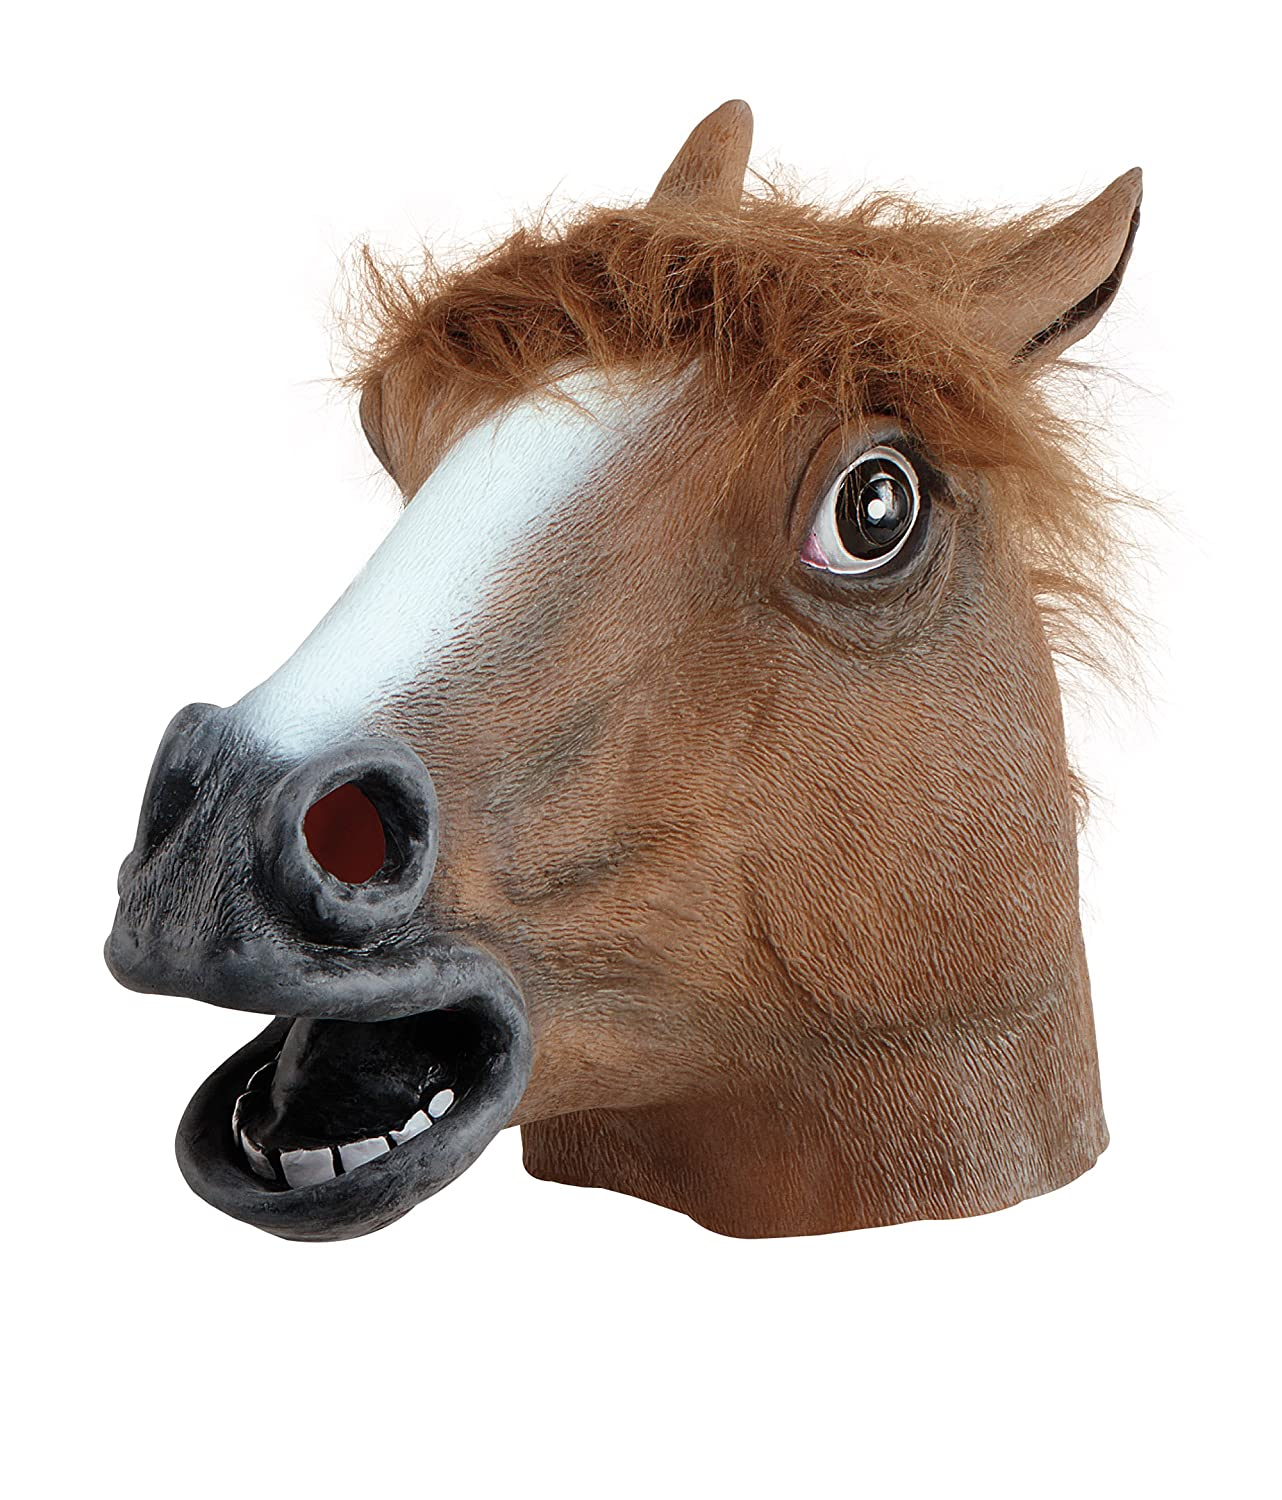 Bristol Novelty BM160 Horse Mask (One Size): Bristol Novelty ...